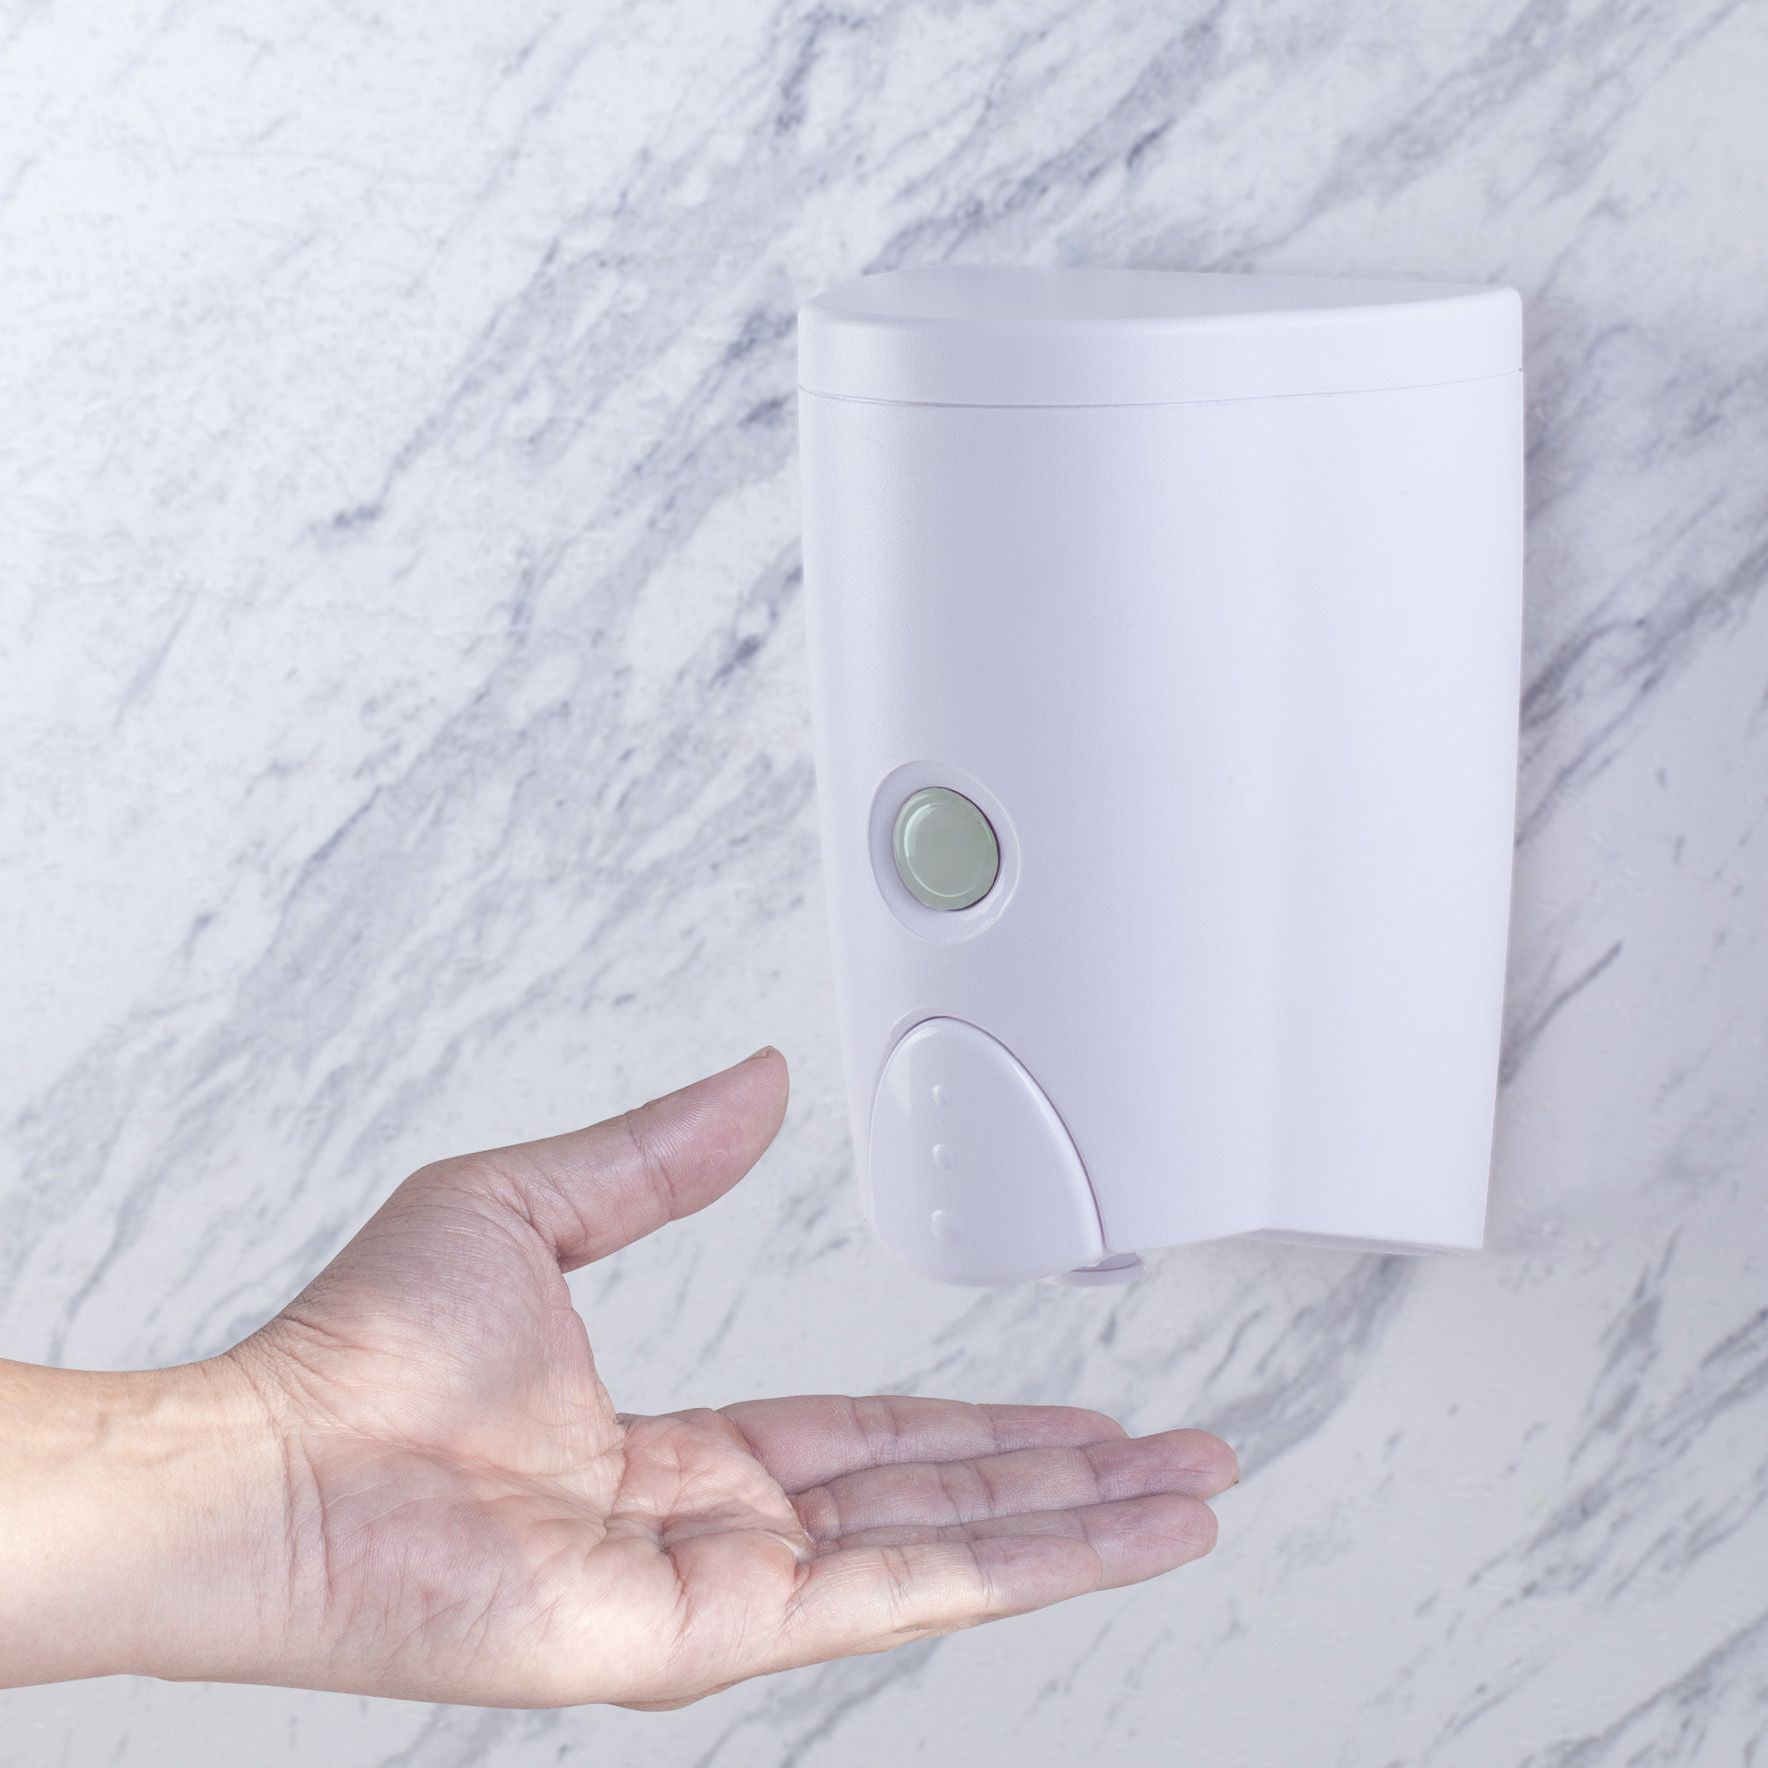 Easy Use Wall Mount Hand Soap Dispenser